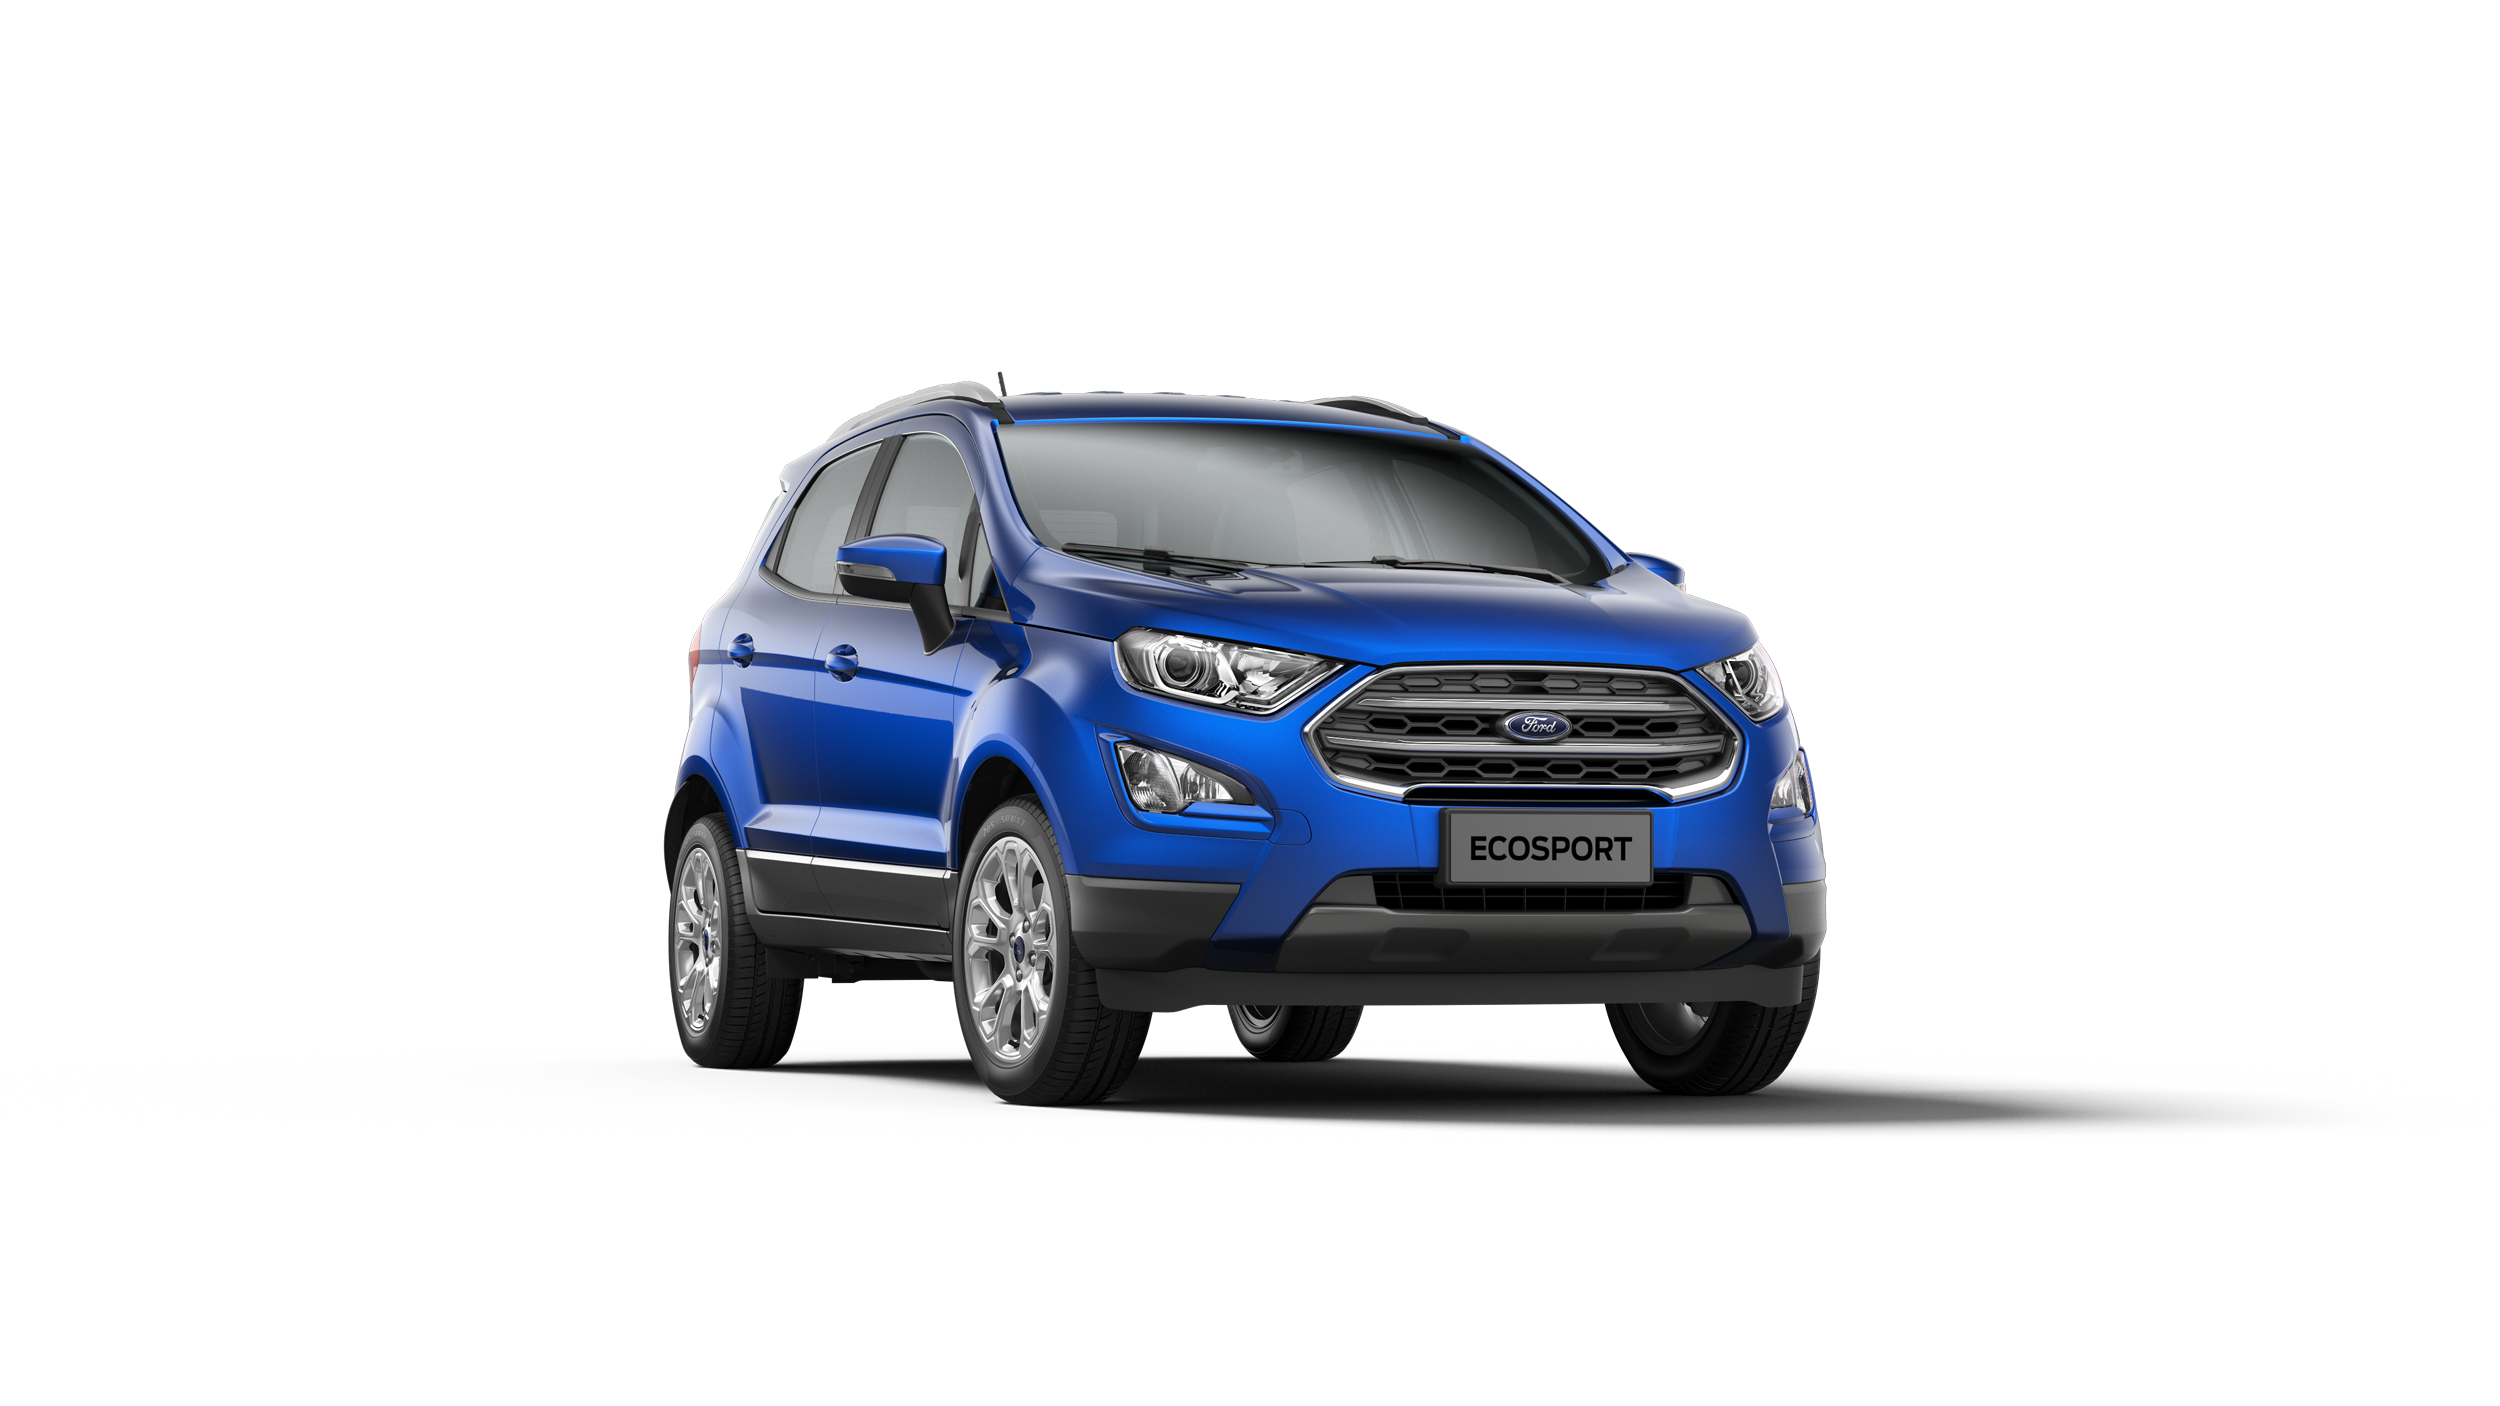 Photo of Ford launches EcoSport with a manual transmission in the top of the line Titanium+ variant; Priced at Rs.10.47 lakh